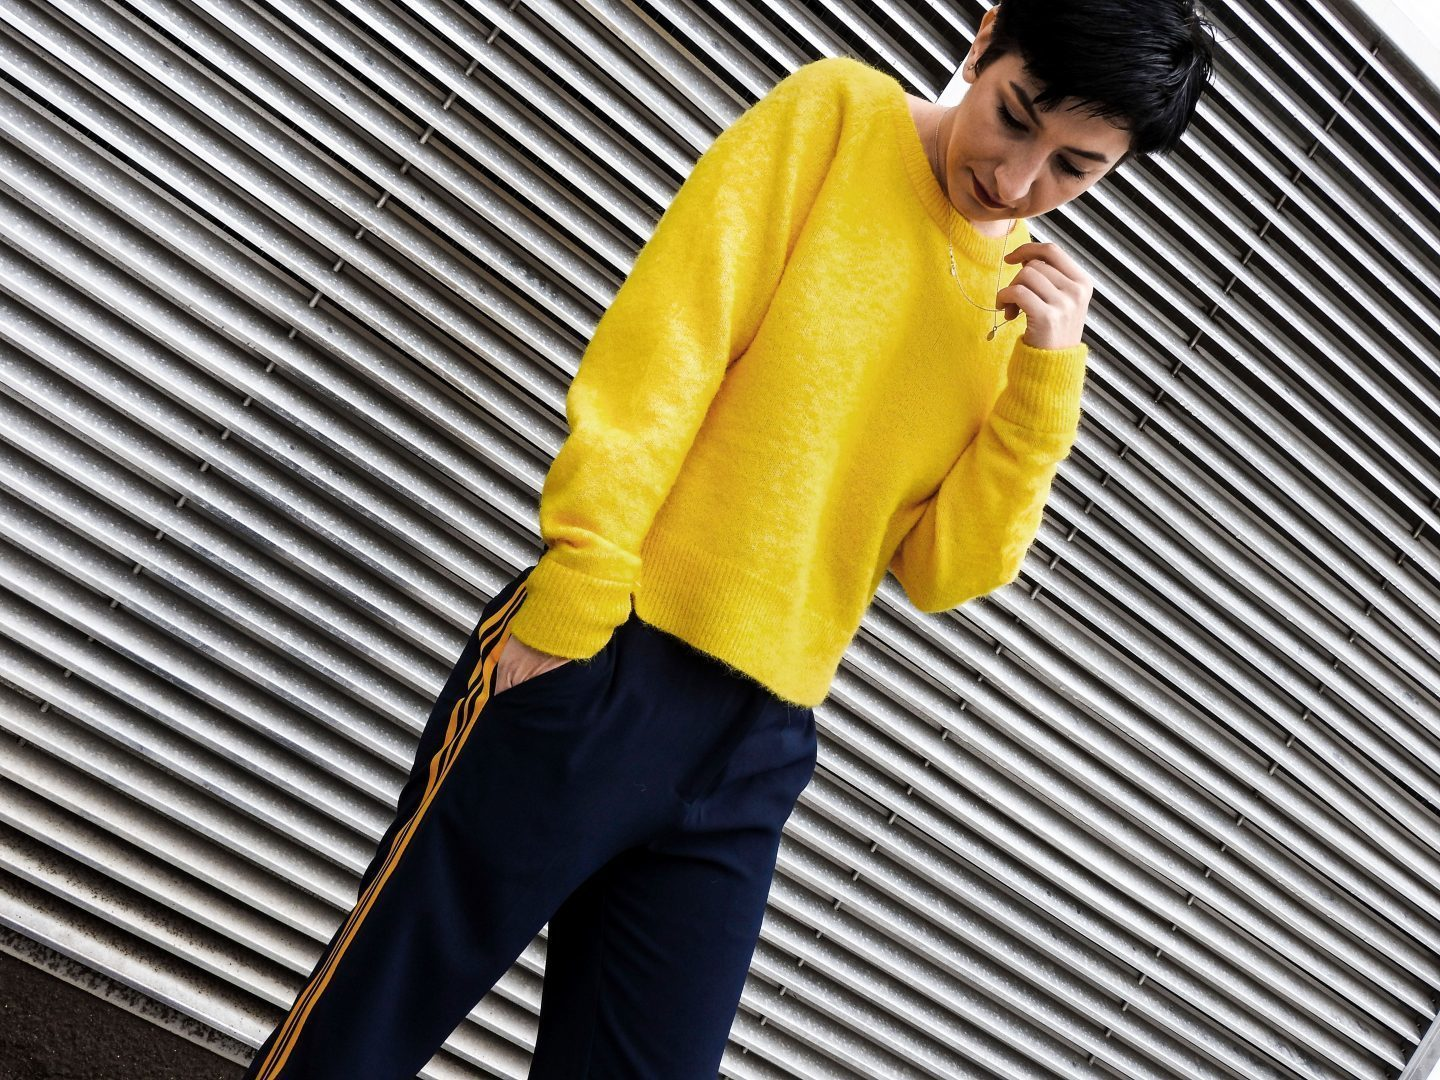 Casual Fall Outfit Yellow sweater, fall fashion, blog 3 MihaBalan.com copy